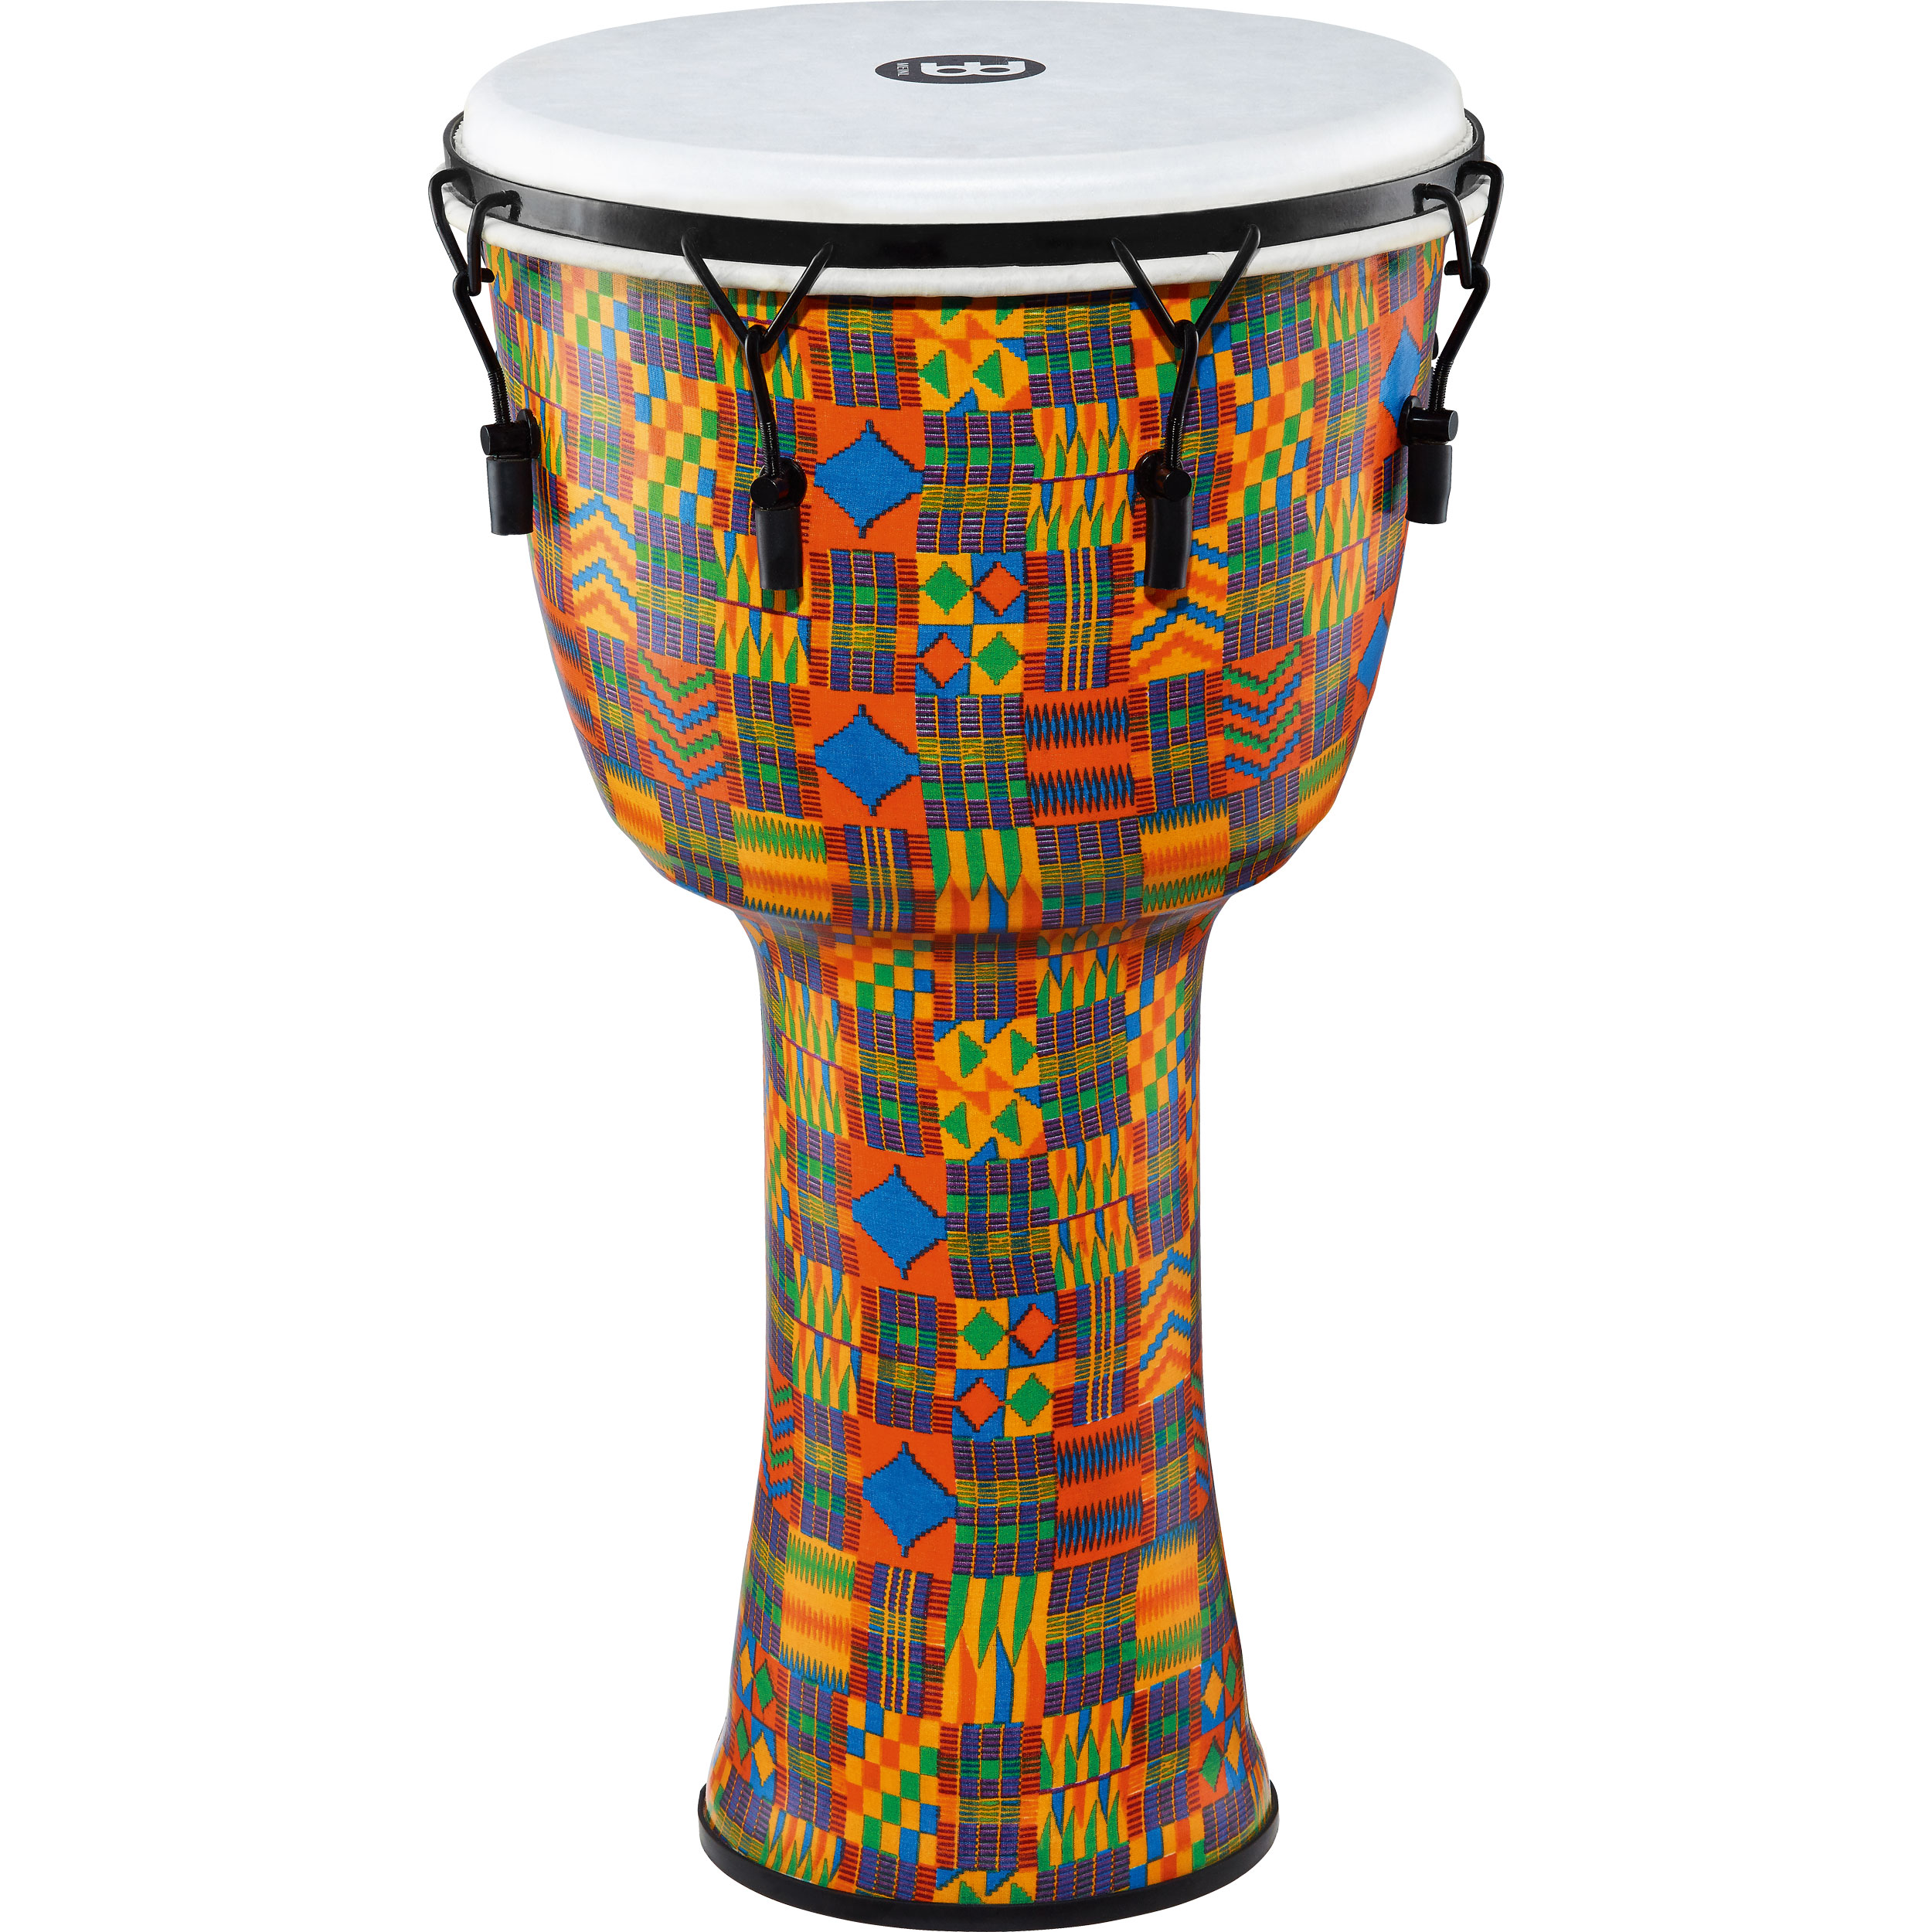 "Meinl 14"" Mechanically-Tuned Travel Djembe in Kenyan Quilt with Synthetic Head"